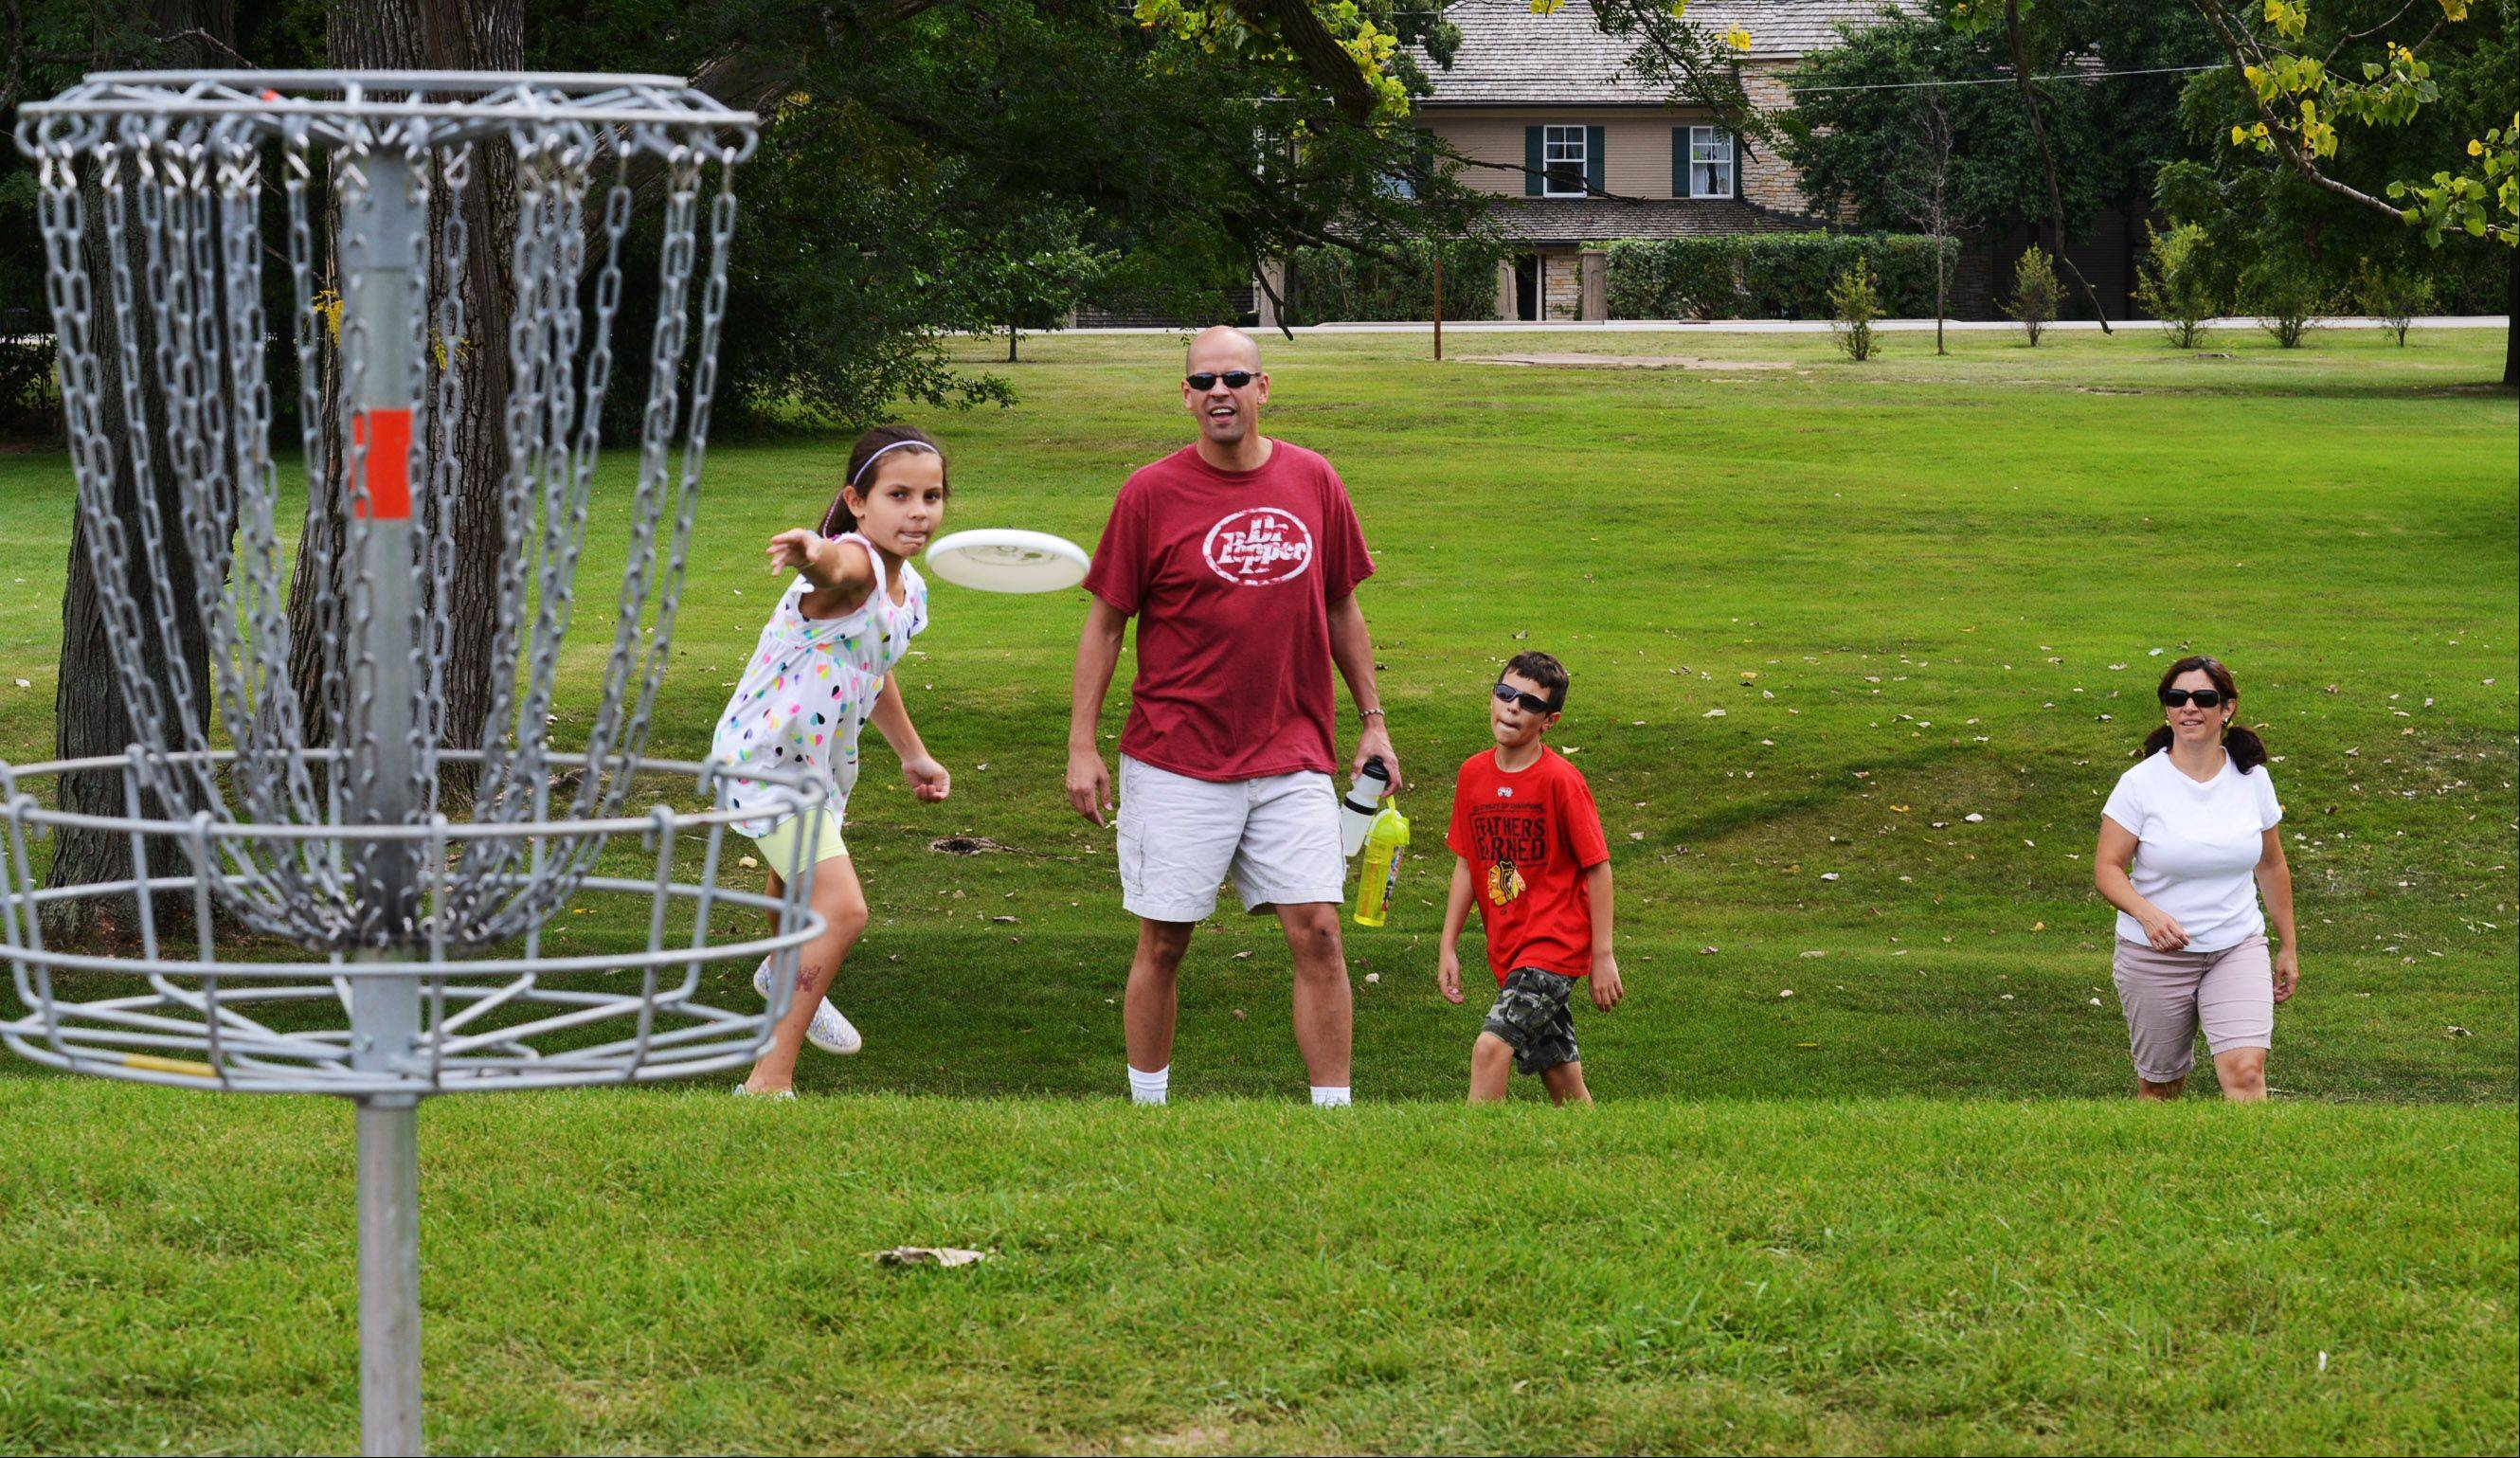 The Disk Golf Course was a popular stop in Wheeler Park in Geneva Sunday. Avery Lundblad, 8, sends a disk towards a basket while Dad Brad, Brother Xander, 12, and Mom Cathy watch and wait their turn. They are from Geneva.